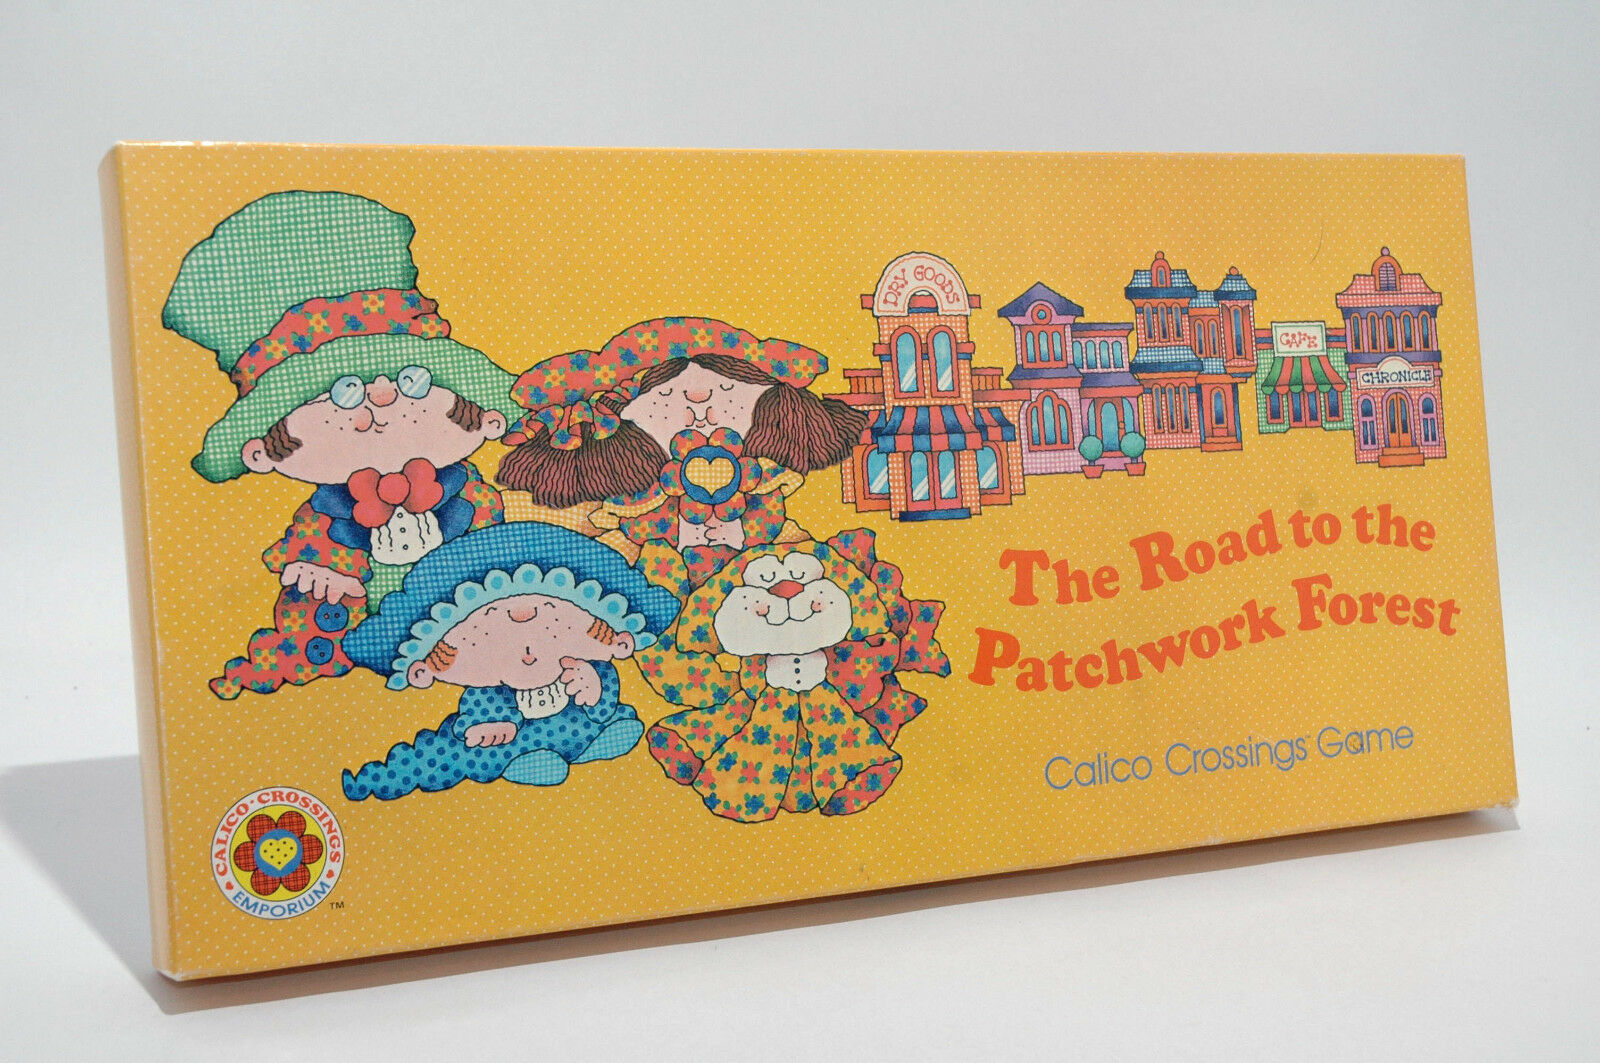 The Road to the Patchwork Forest Calico Crossings Board Game from Current